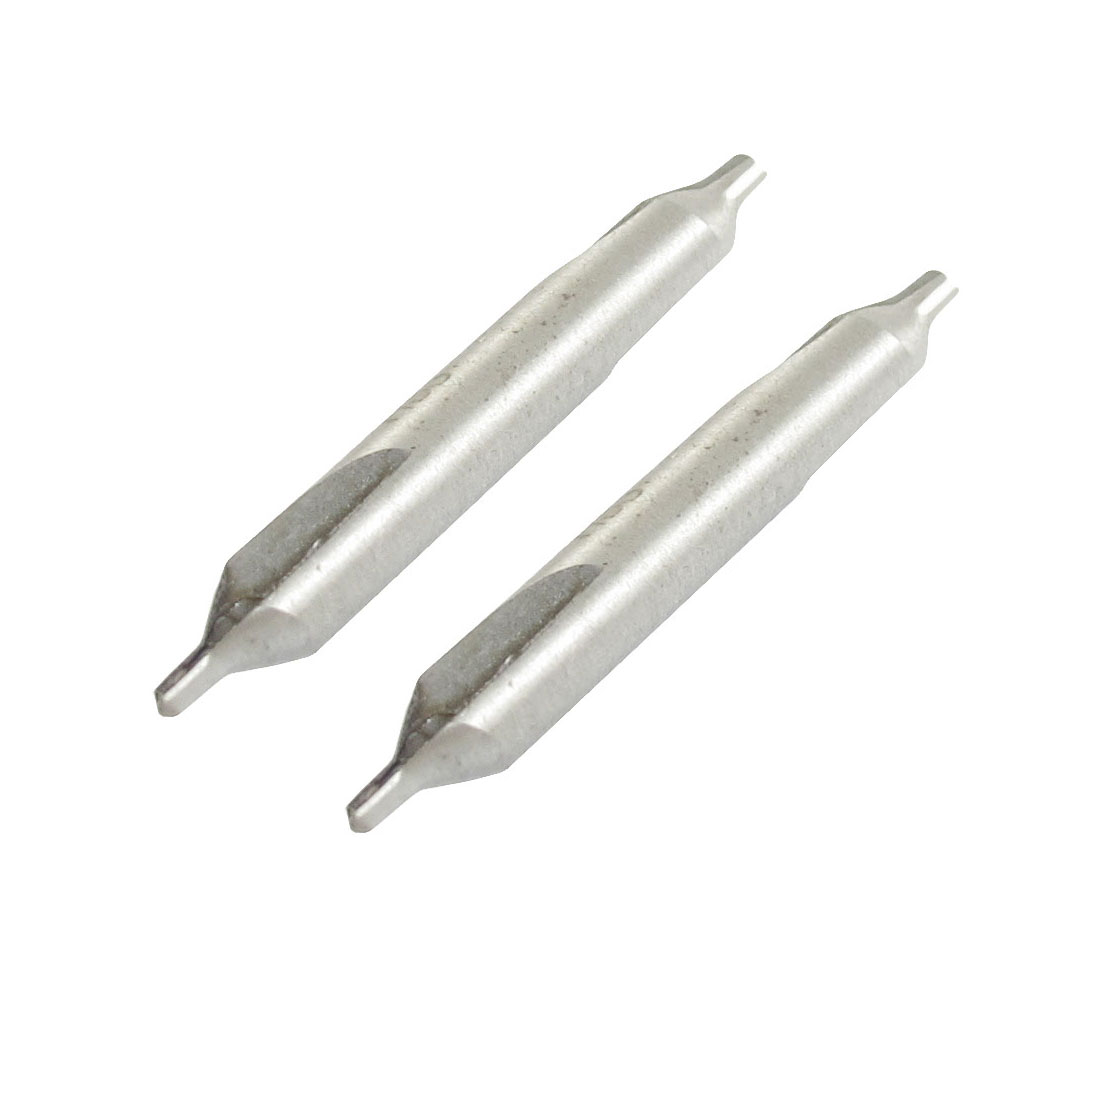 2 Pcs 2mm Dia Tip HSS Center Spotting Drill Bits Countersinks